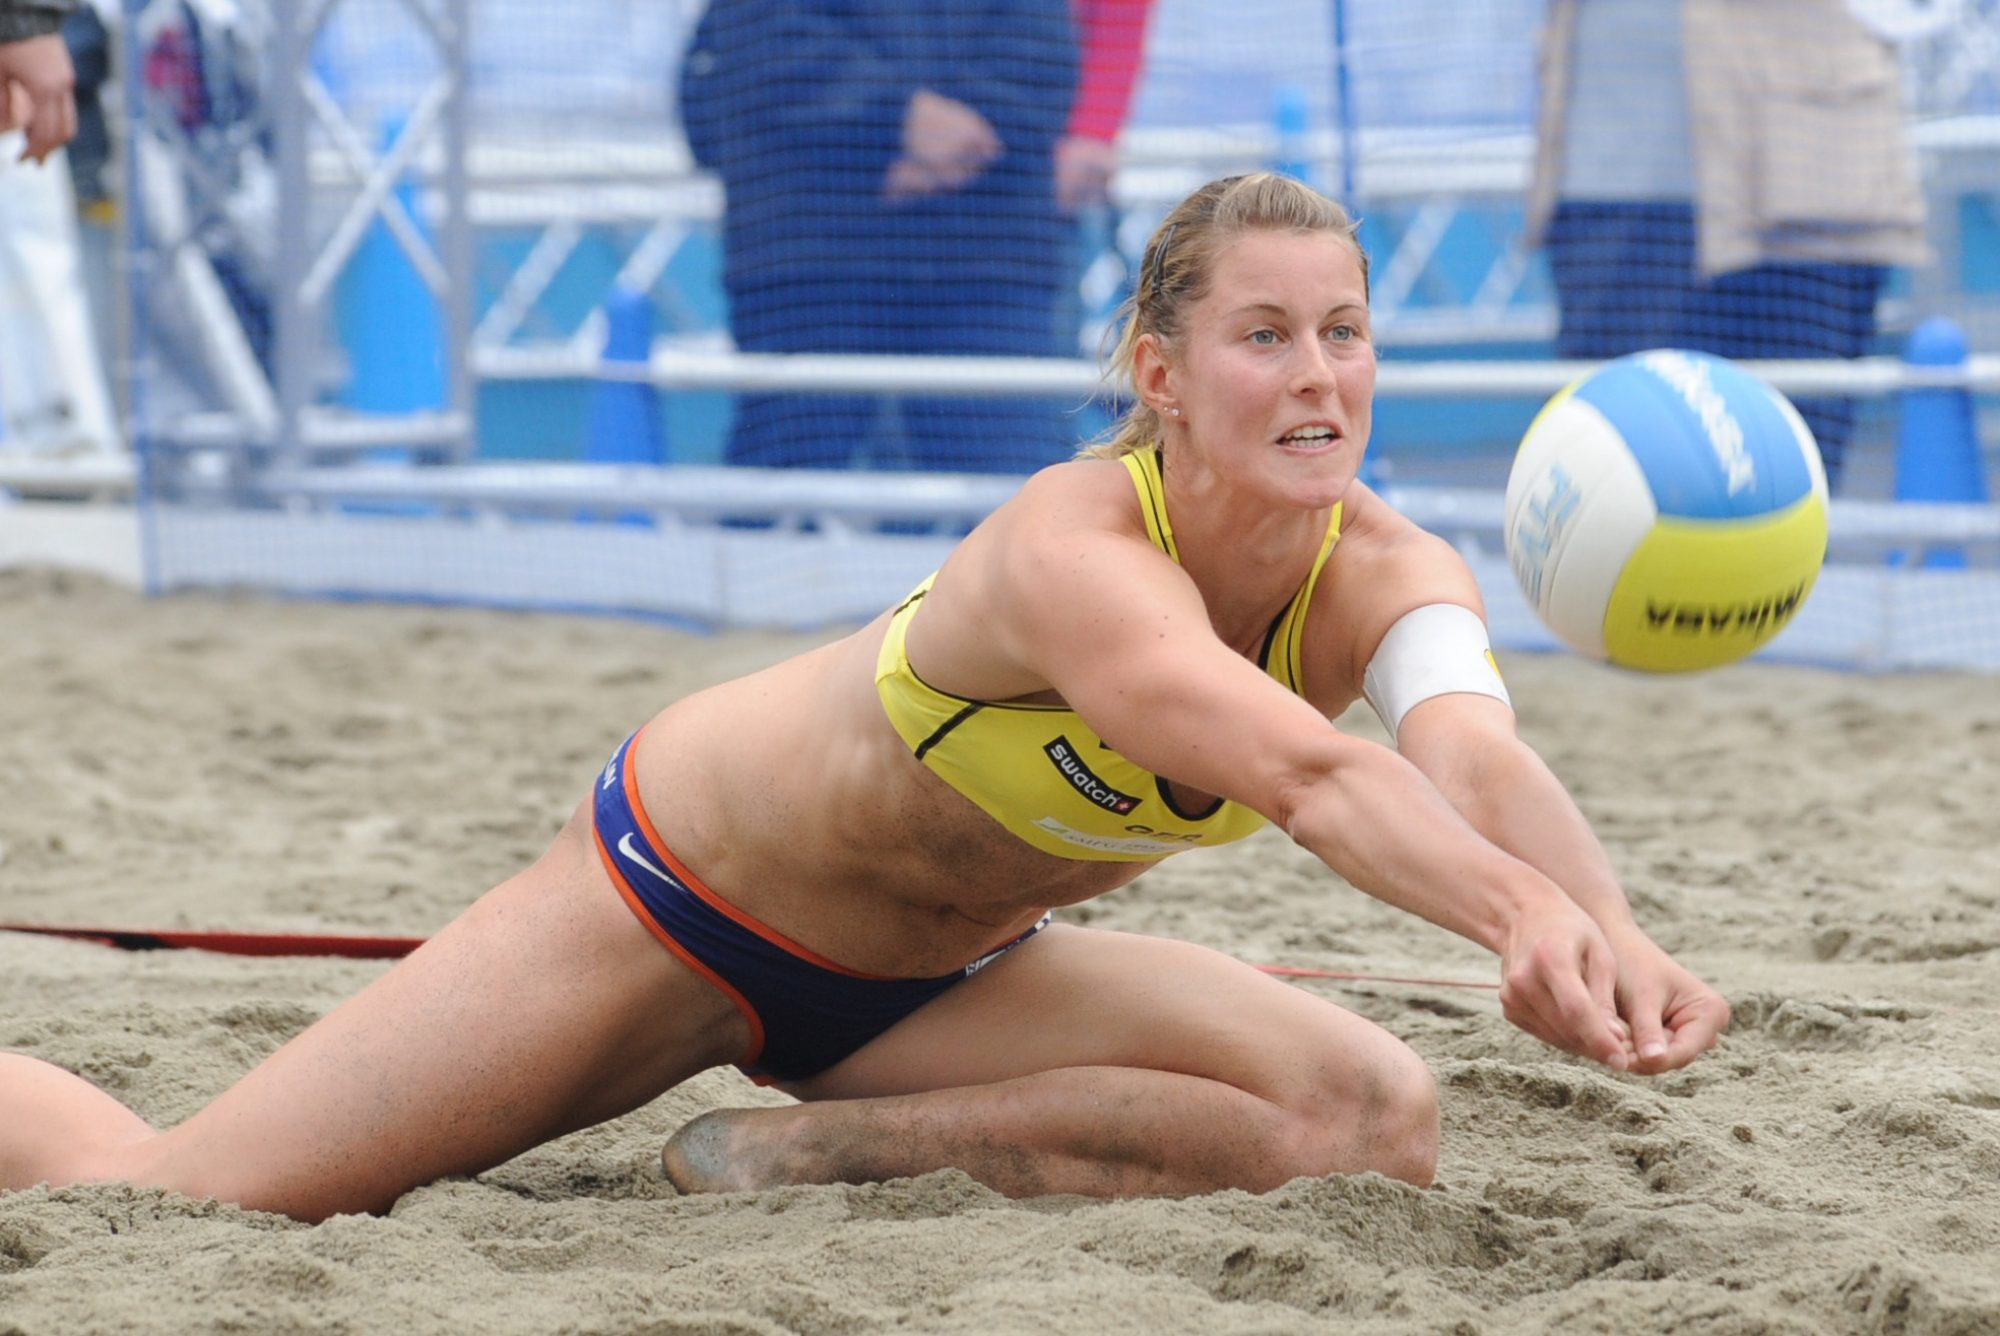 Hottest Volleyball Players - Sara